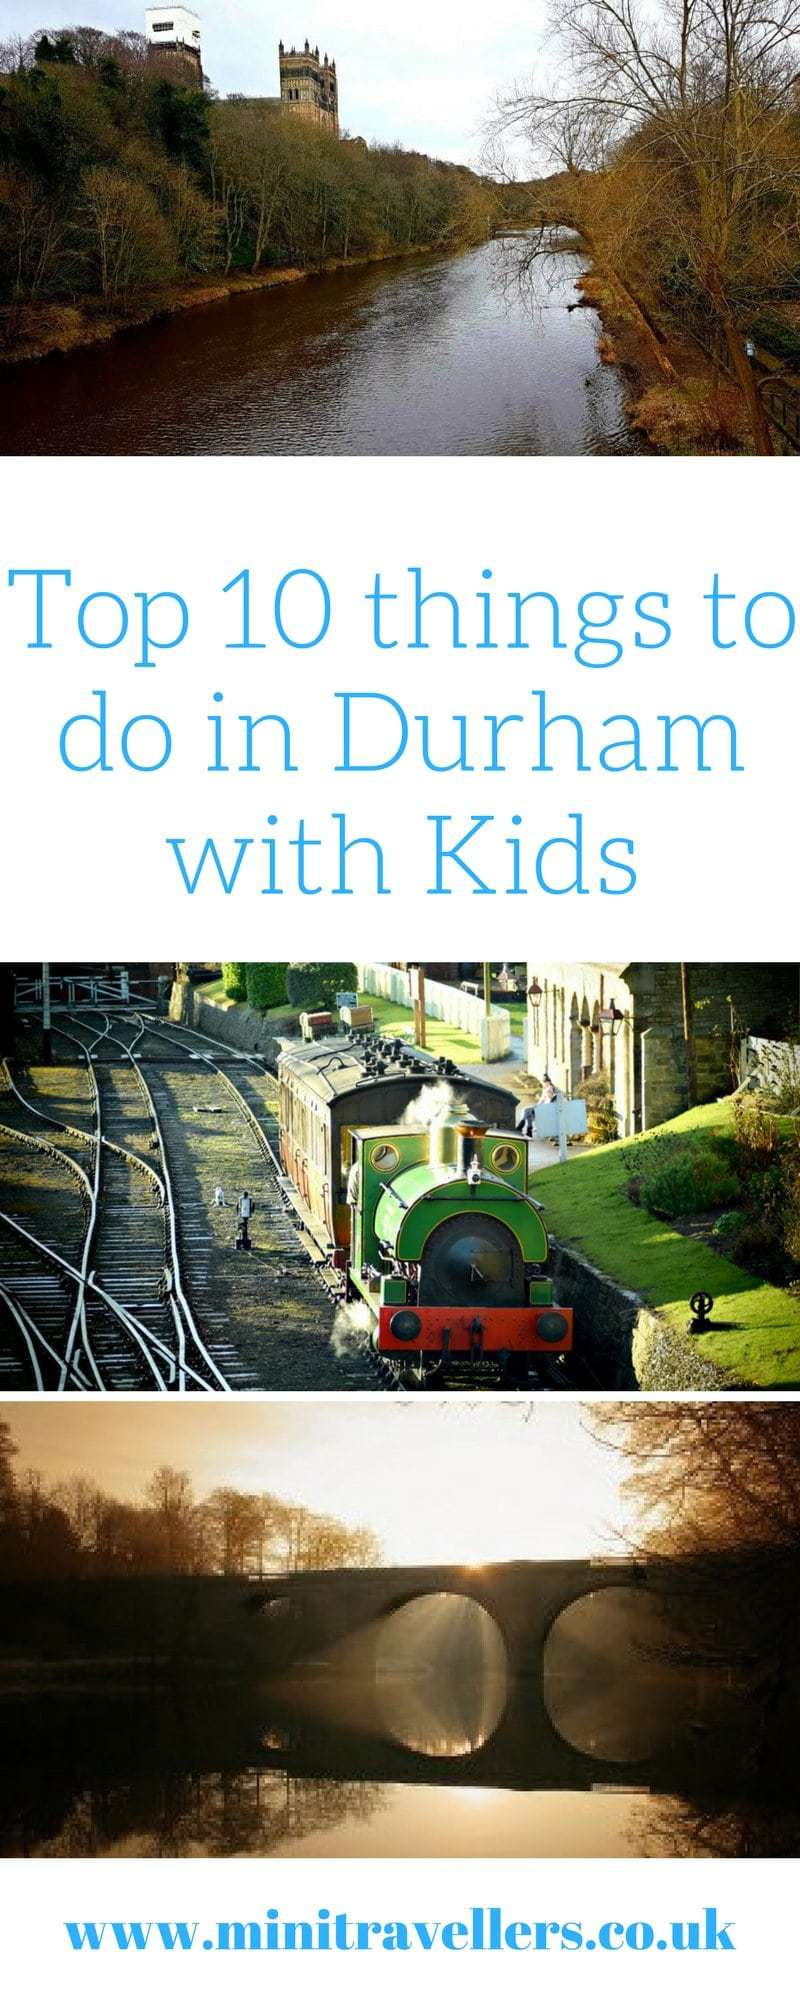 Top 10 things to do in Durham with Kids